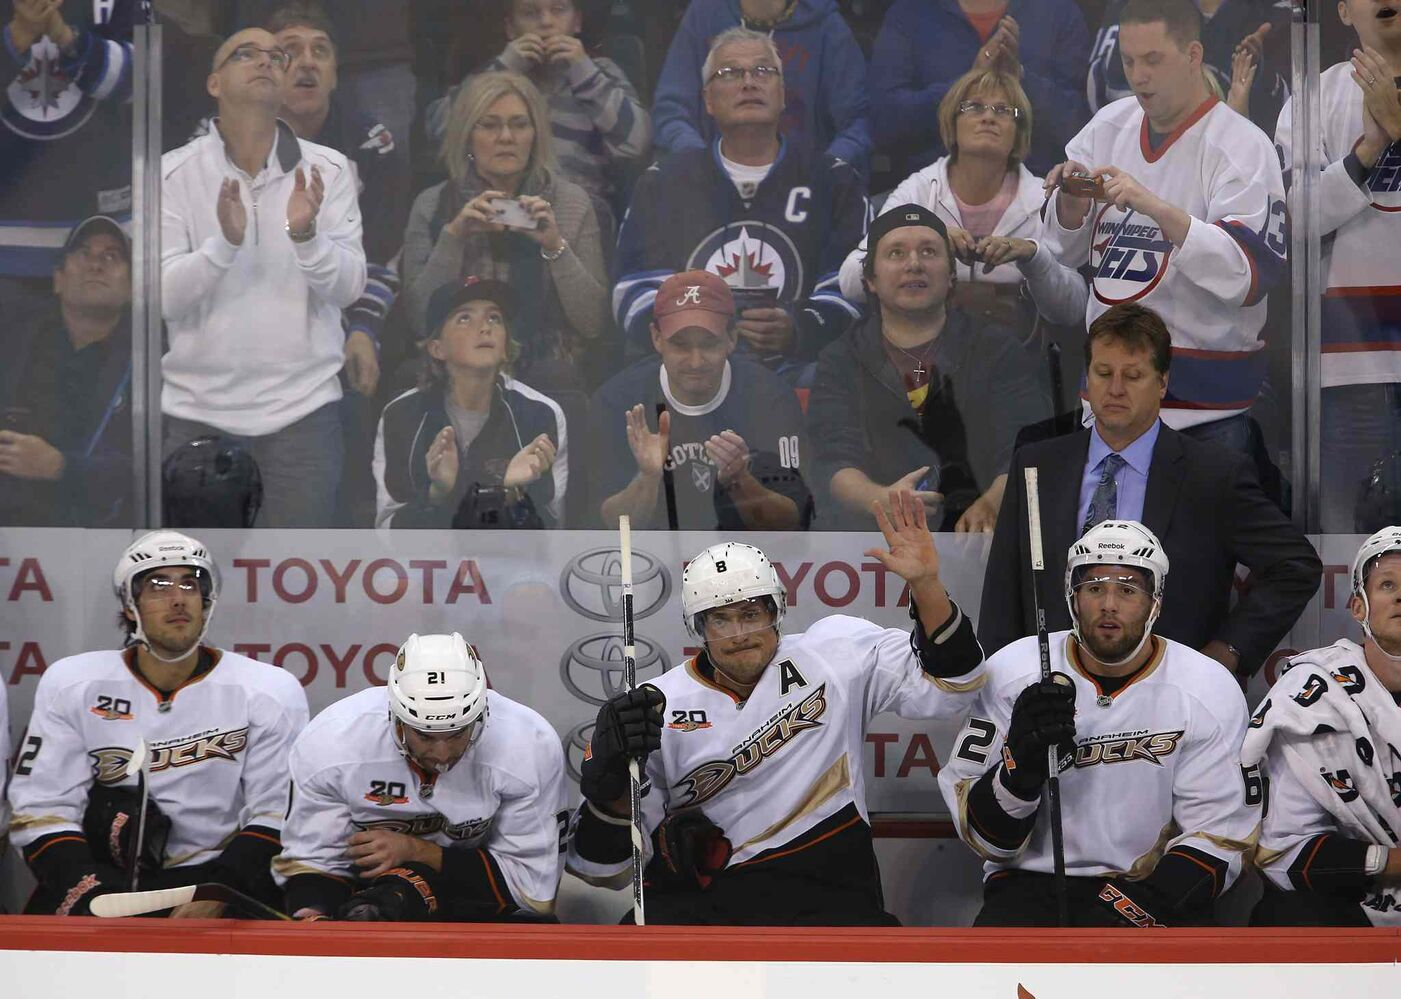 Anaheim Ducks' Teemu Selanne waves to fans as they salute him during the first period. Selanne, of course, used to thrill fans as a member of the Jets.